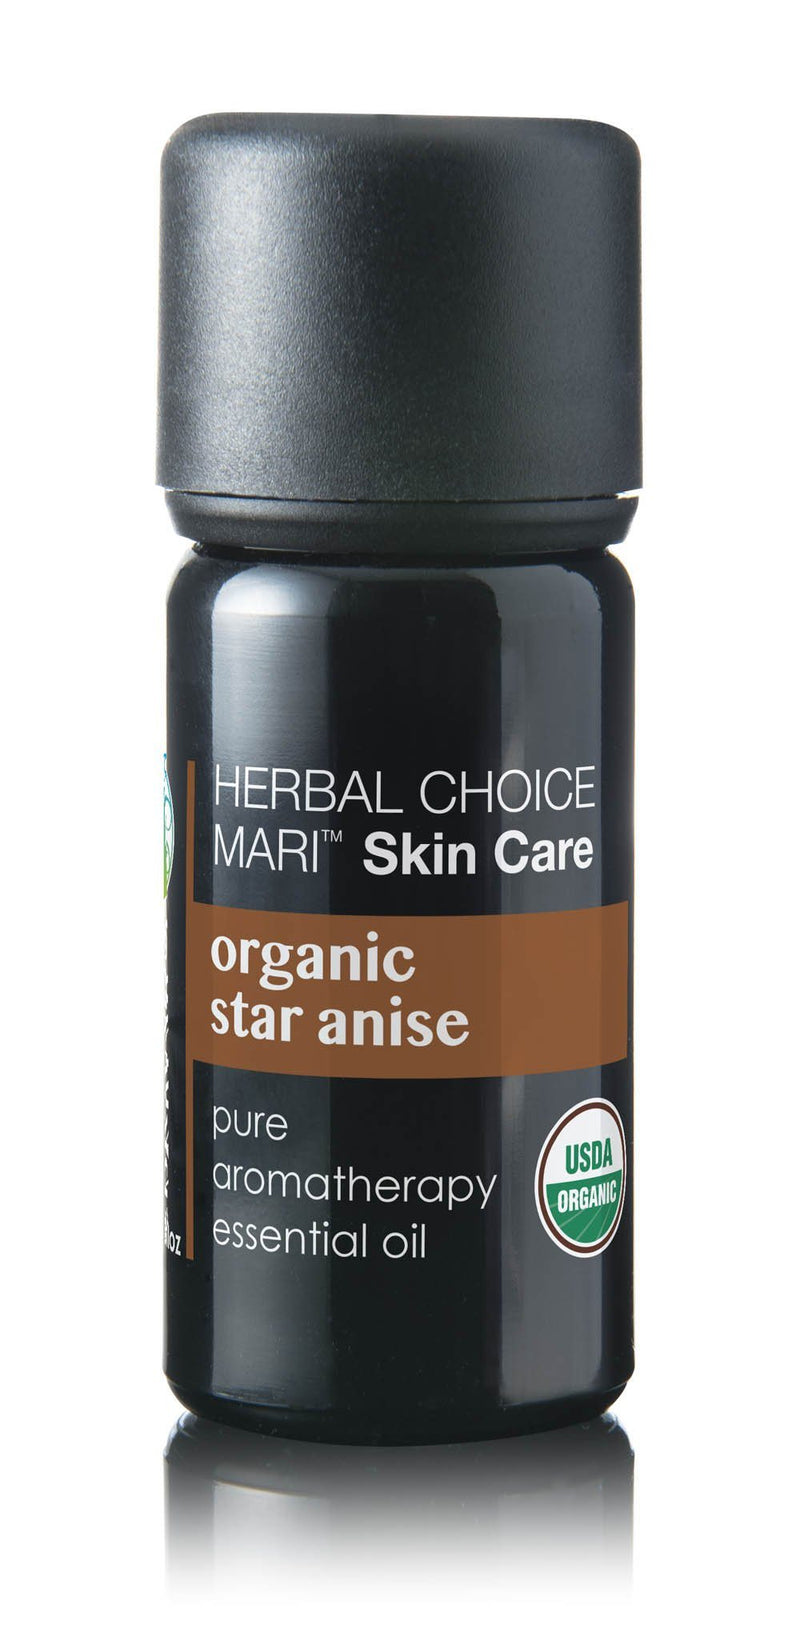 Herbal Choice Mari Organic Star Anise Essential Oil; 0.3floz Glass - Herbal Choice Mari Organic Star Anise Essential Oil; 0.3floz Glass - Herbal Choice Mari Organic Star Anise Essential Oil; 0.3floz Glass